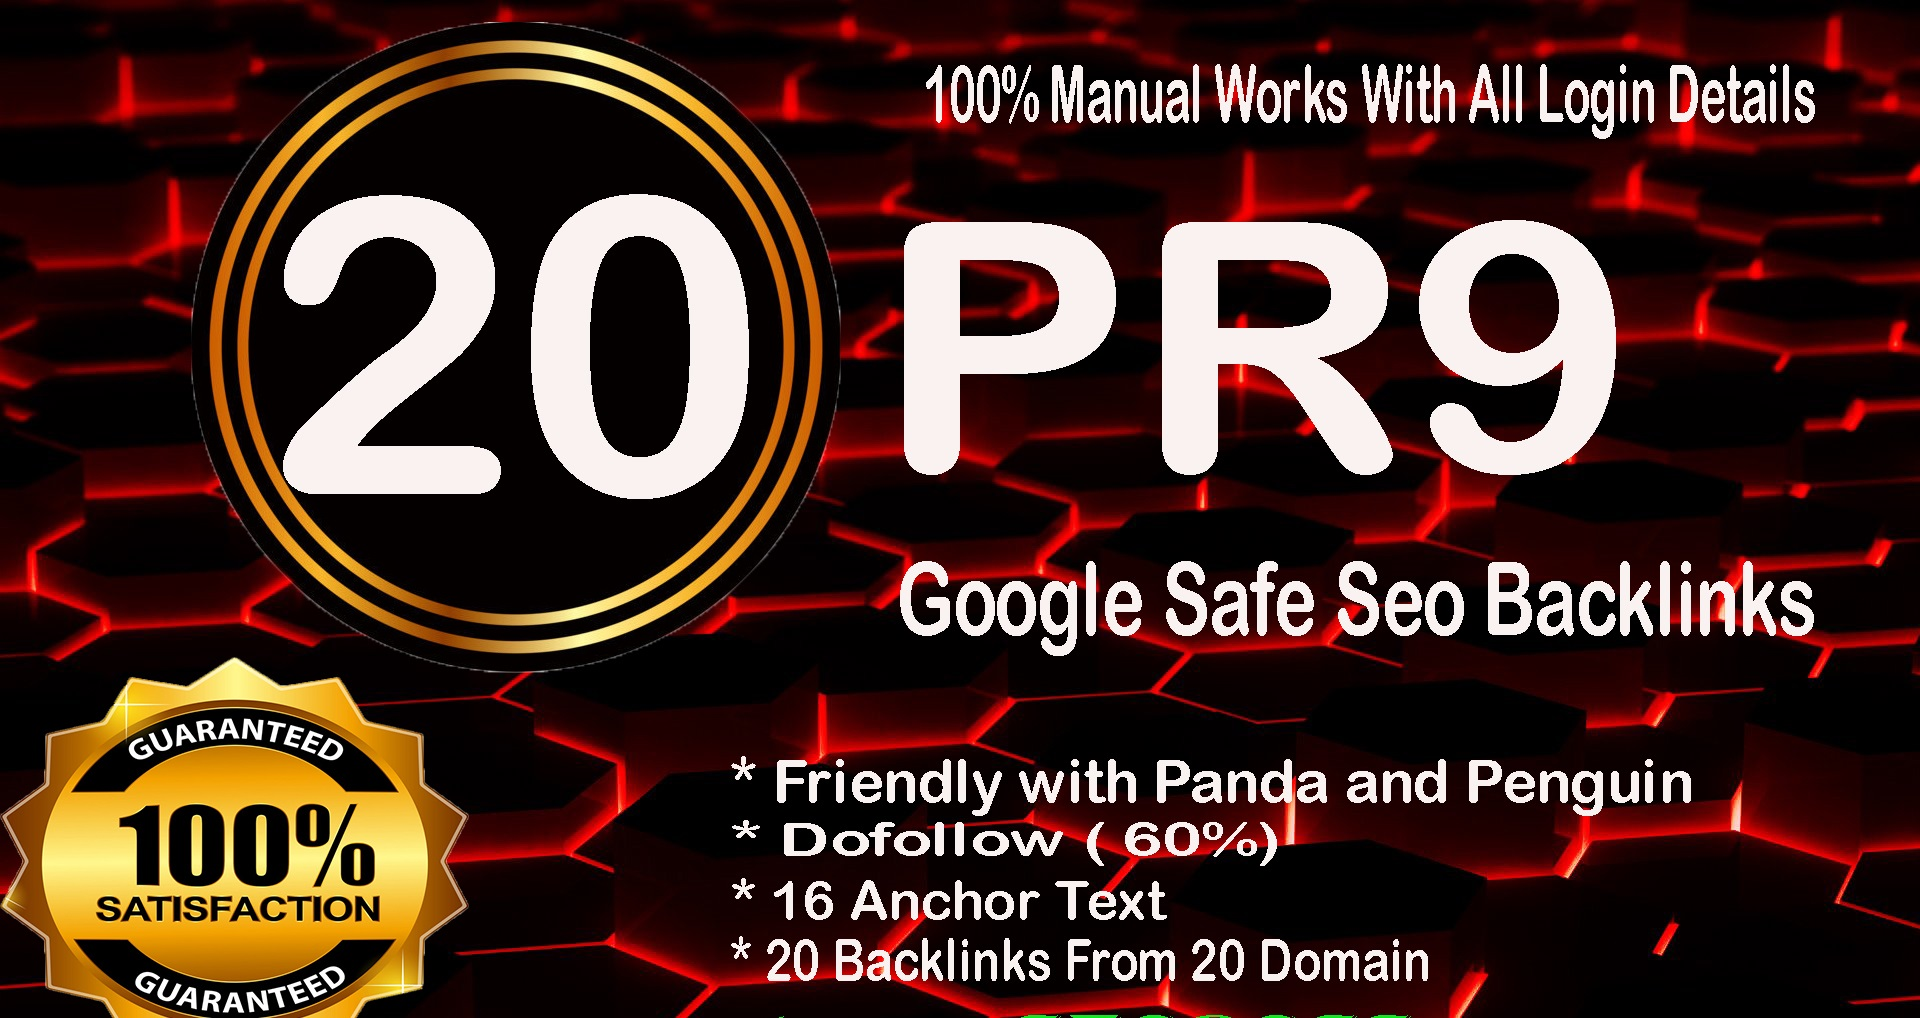 Skyrocket your SEO with 20 pr9 High DA 80+ Google safe Backlinks